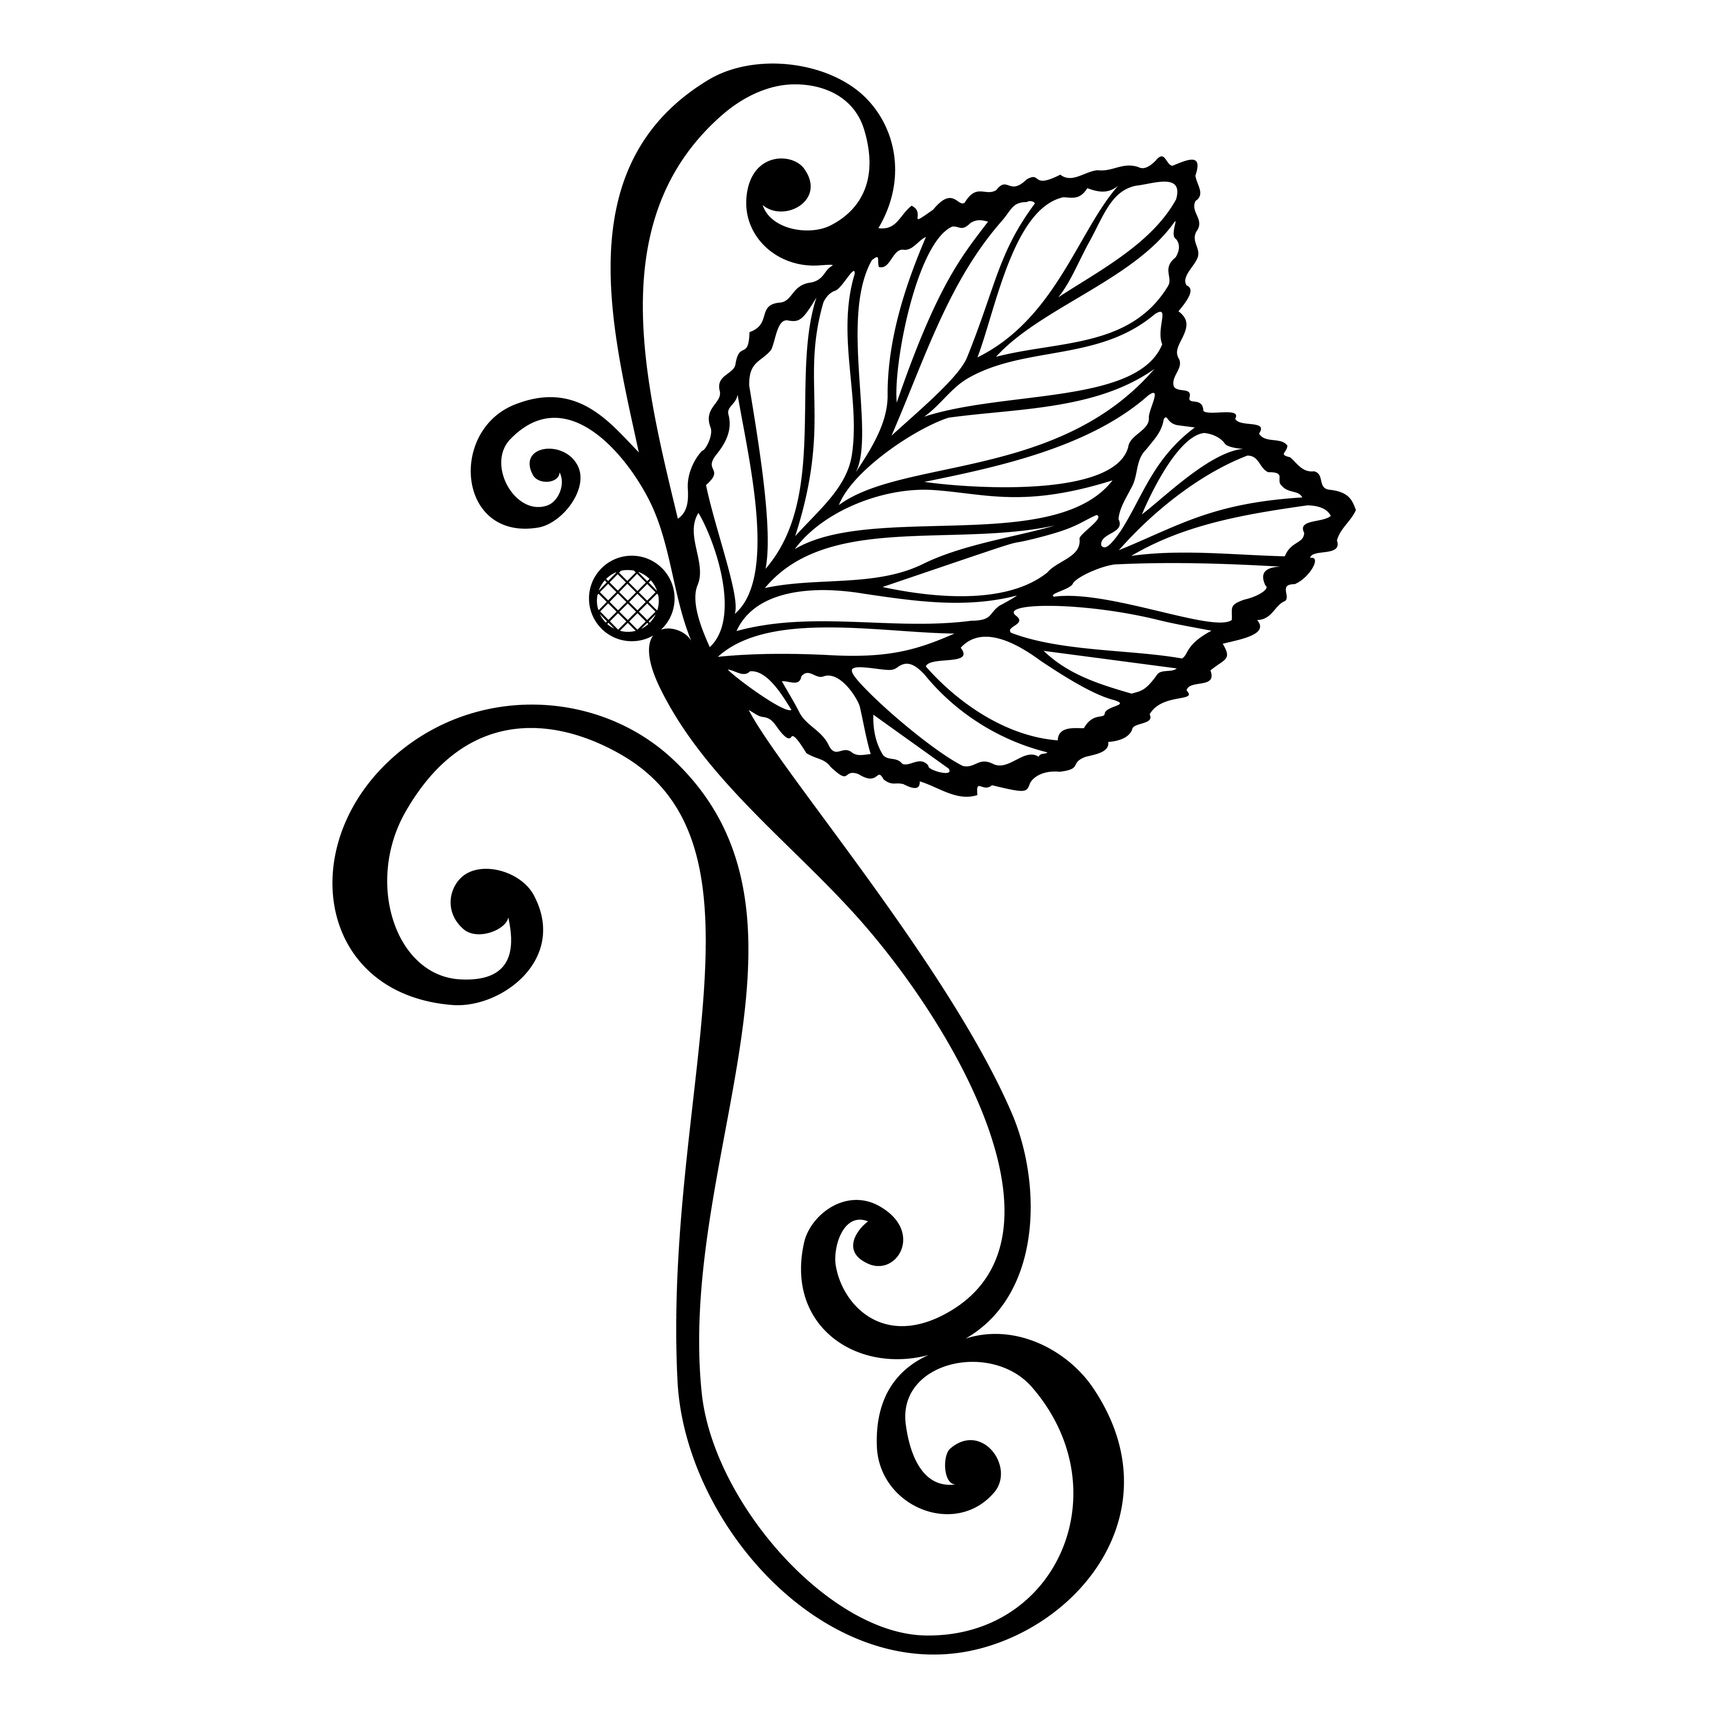 Dragonfly tattoo meaning symbolism really cool stuff dragonfly tattoo meaning symbolism biocorpaavc